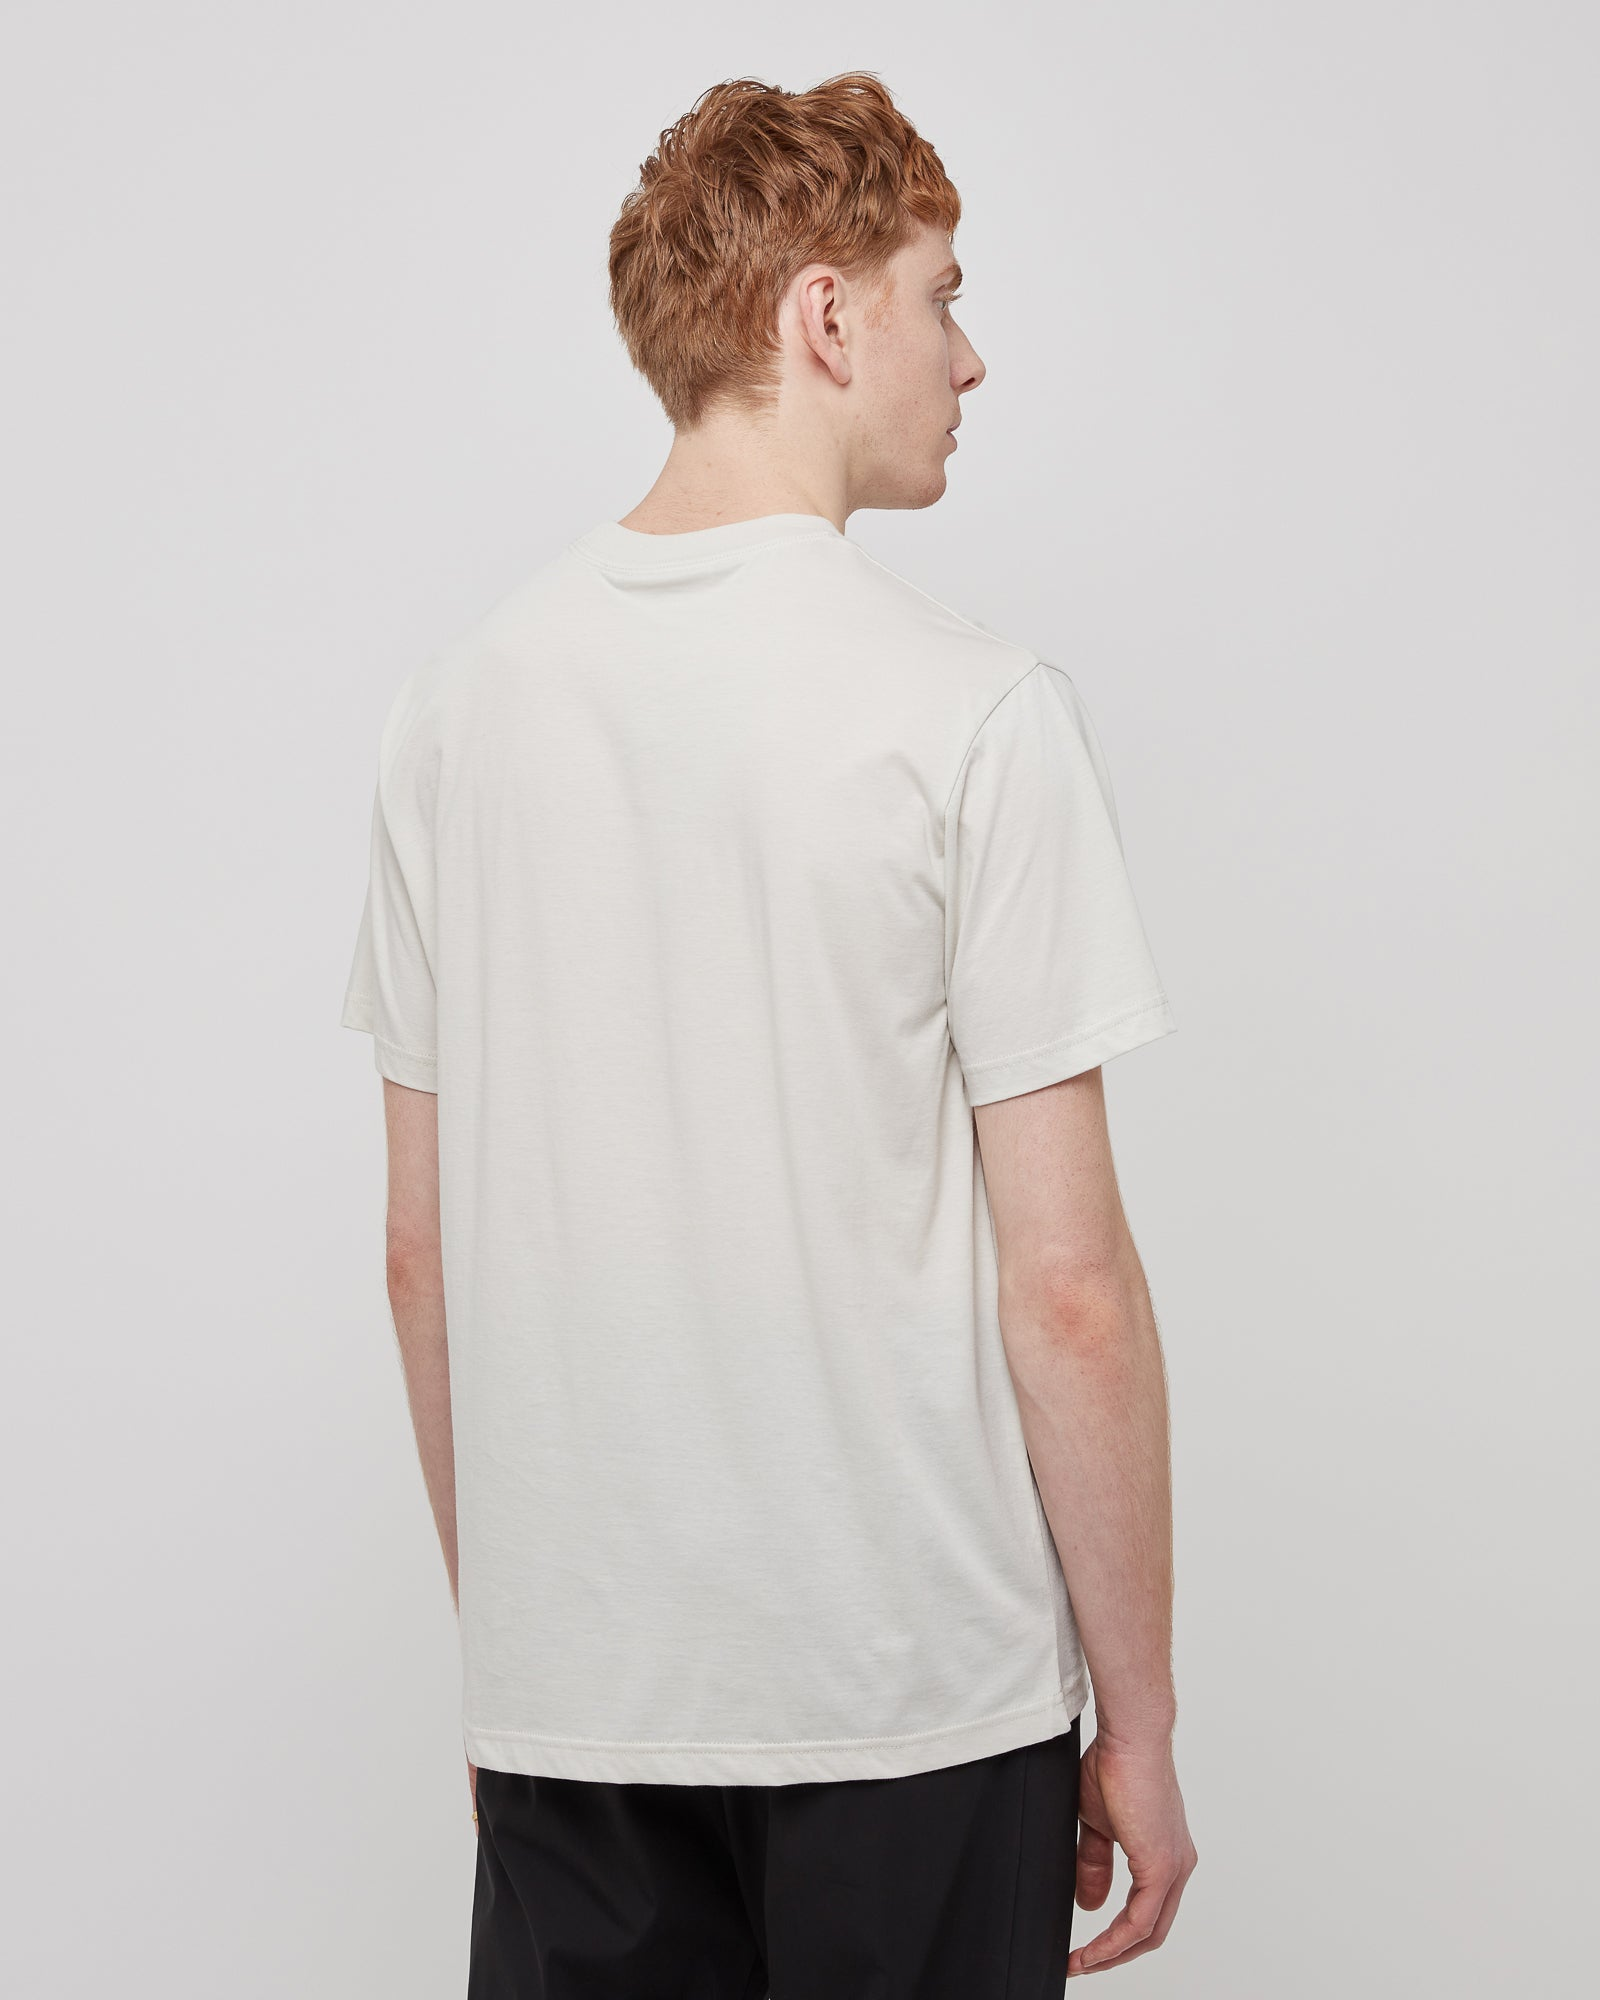 Cycle Standard T-Shirt in Light Gray